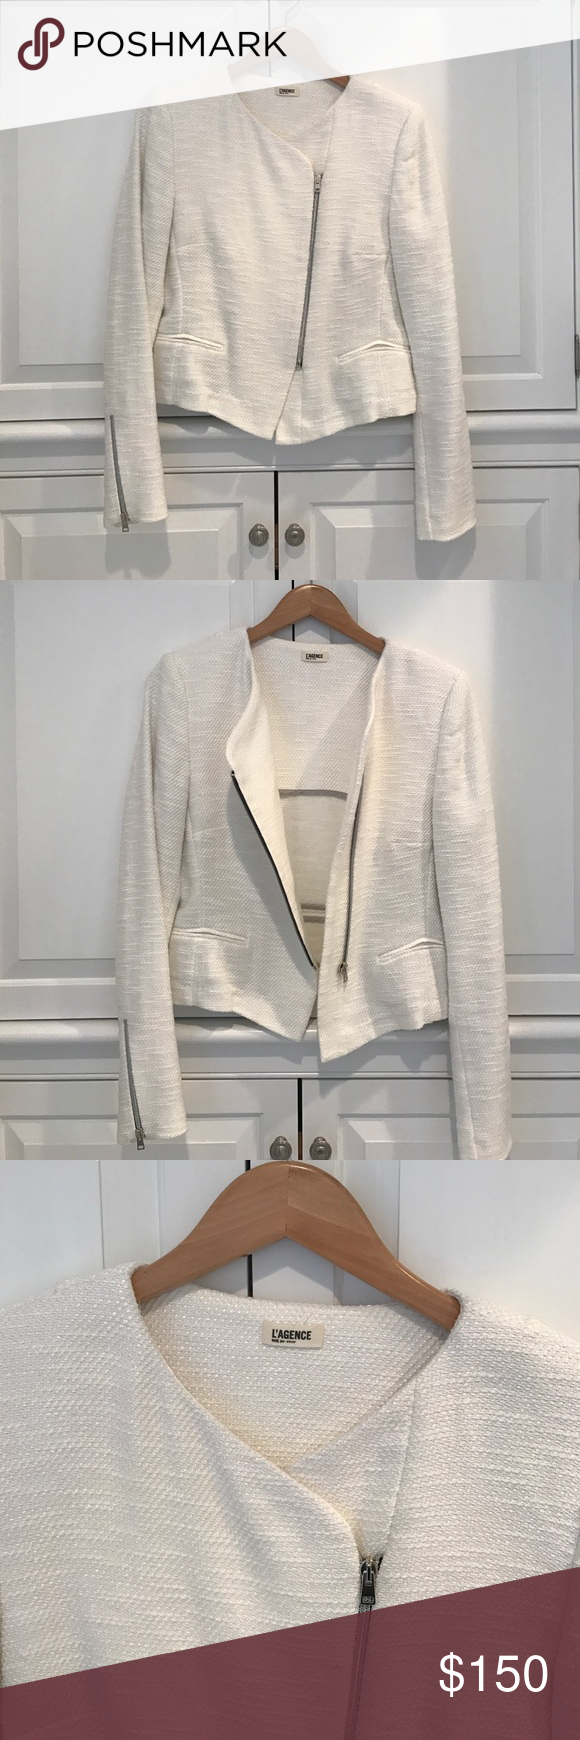 L'Agence Off-white Tweed Jacket L'Agence off-white tweed jacket; short fitted style with zipper details; unlined; cotton blend with a slight sheen; front pockets are still sealed; only worn once L'AGENCE Jackets & Coats